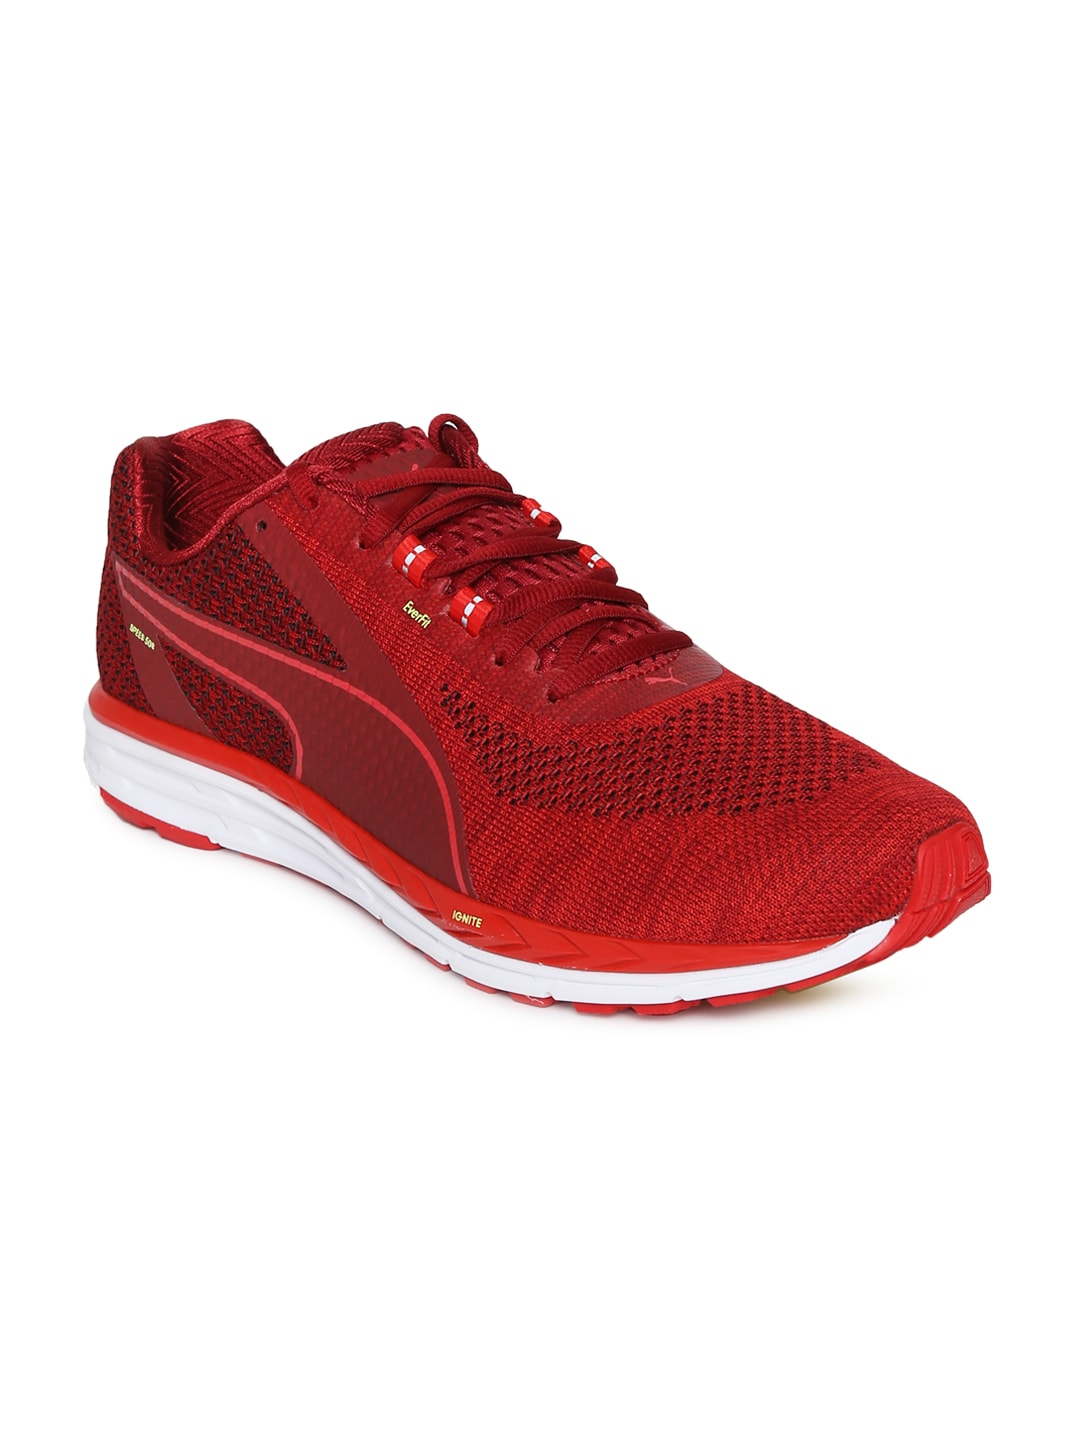 Puma Faas 500 V3 Red Running Shoes for women - Get stylish shoes for ... 70742fac9